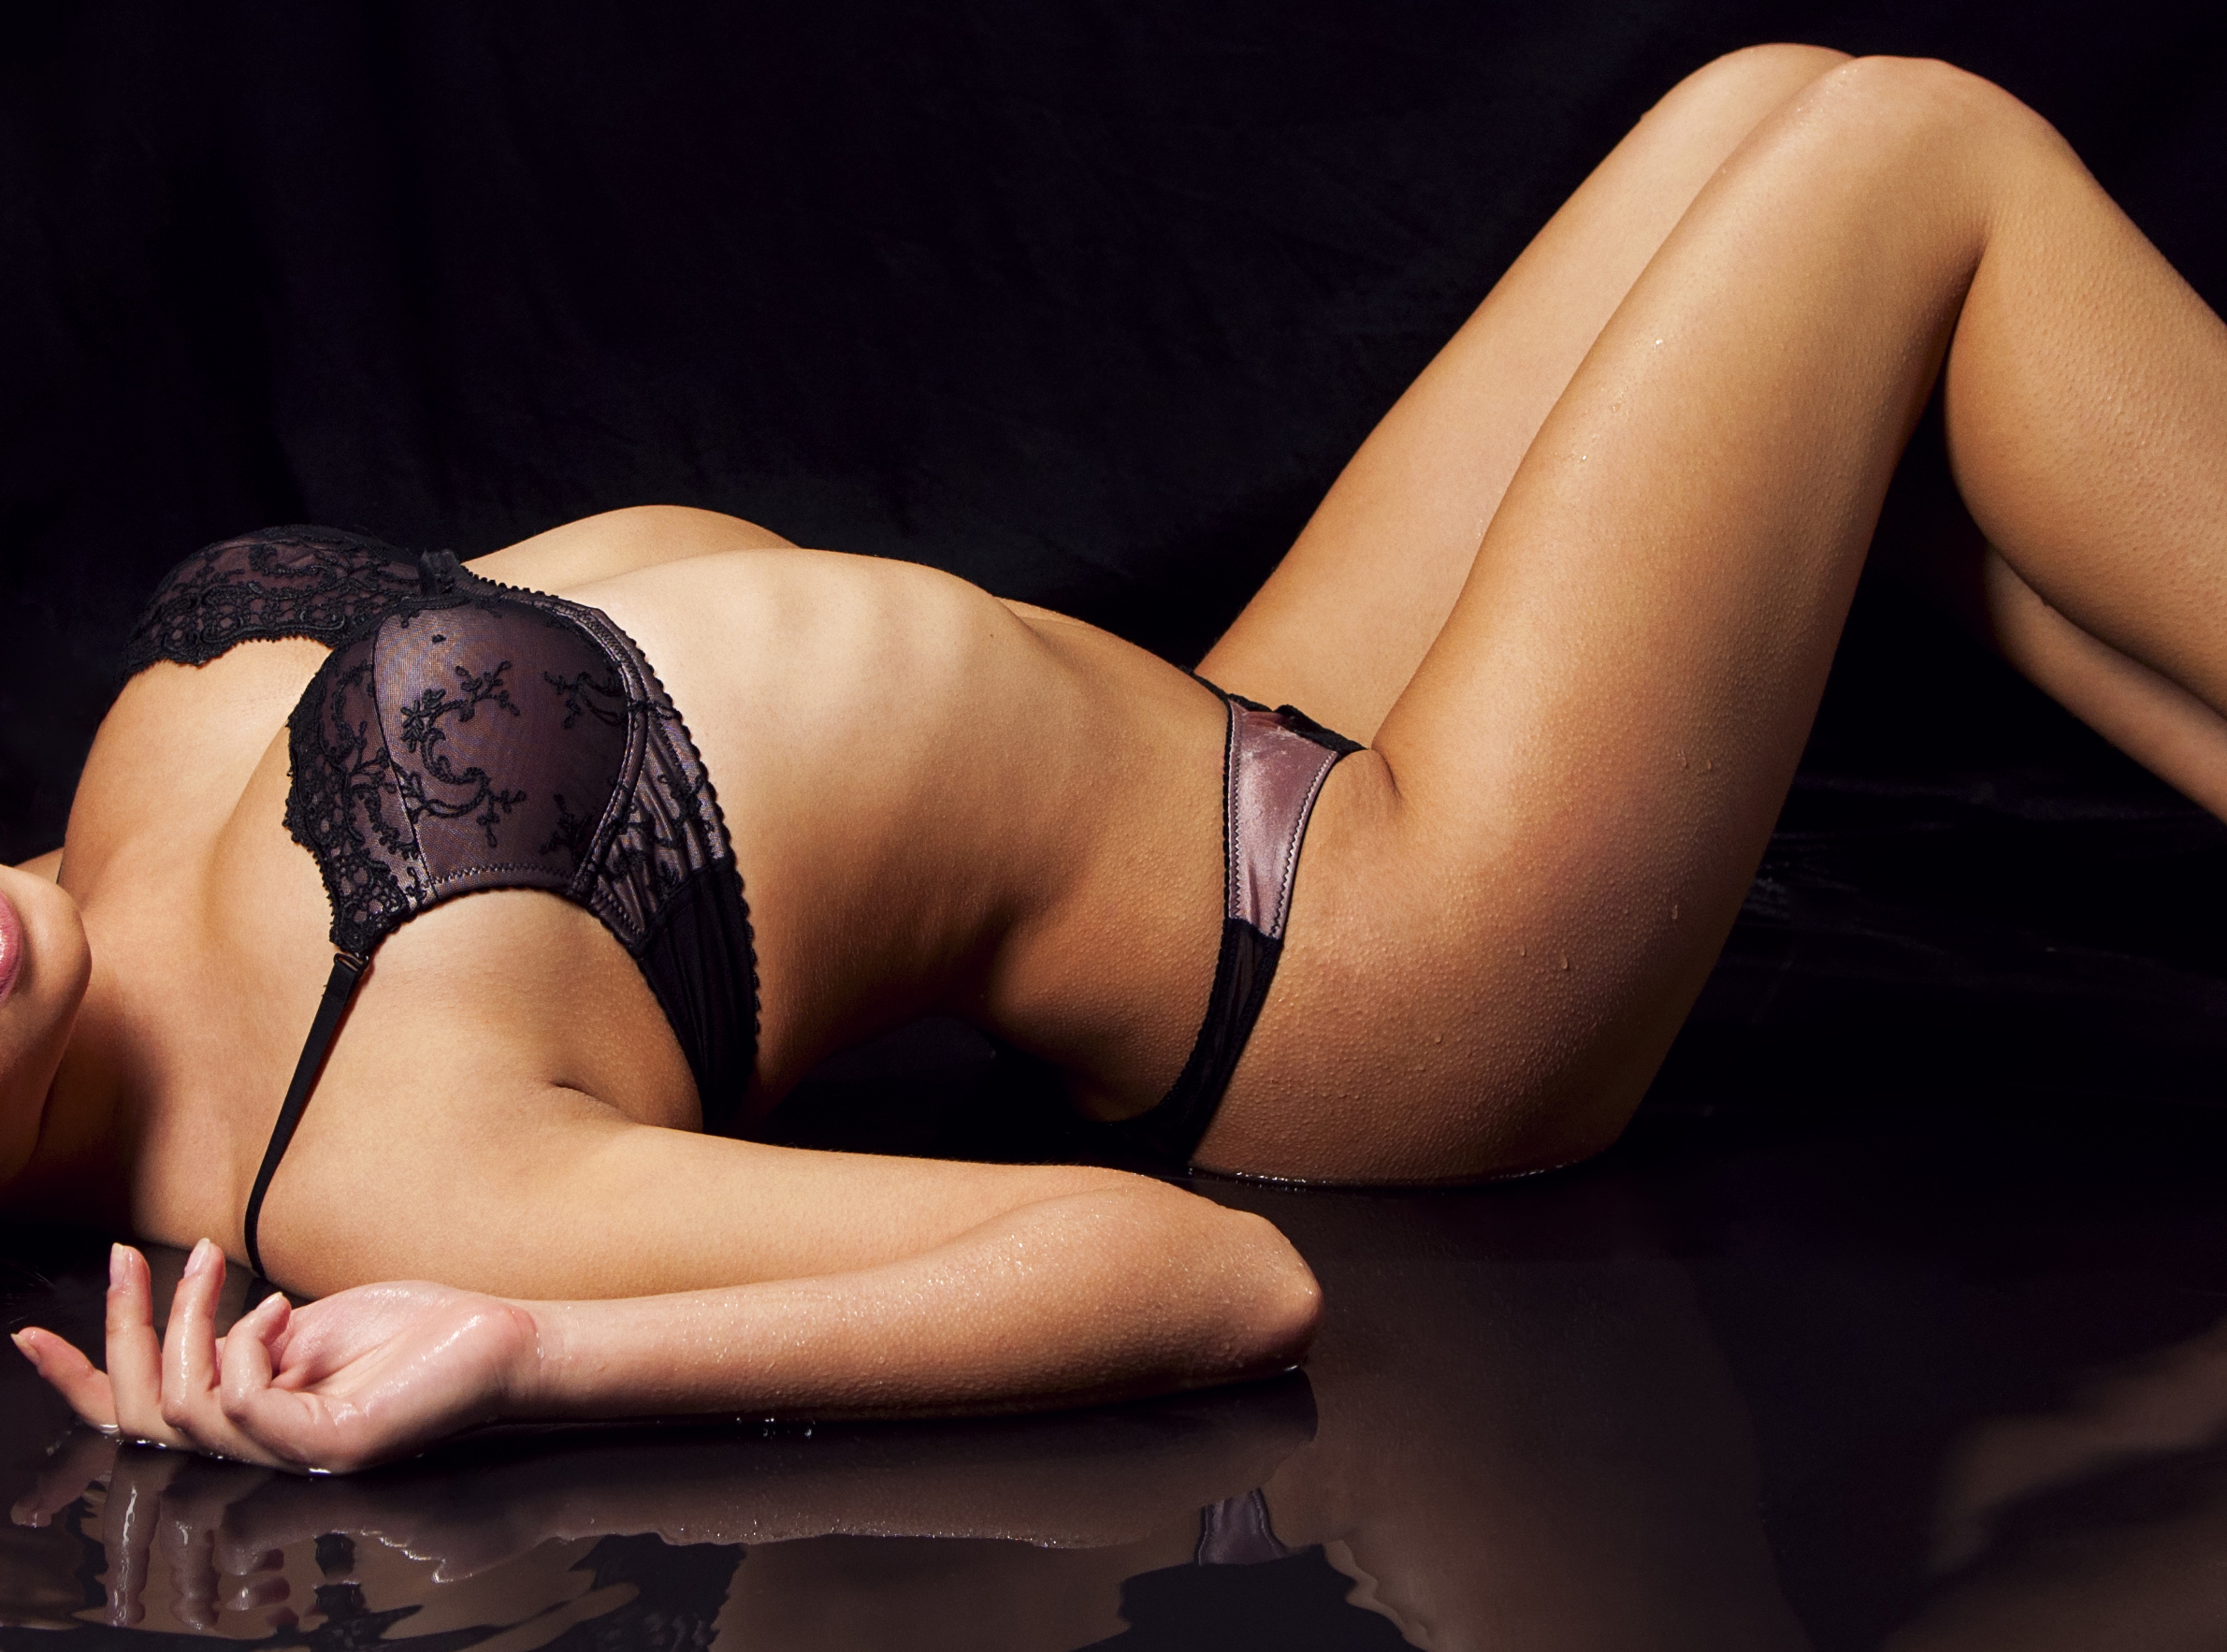 erotic massage sunshine coast escorts in perth australia